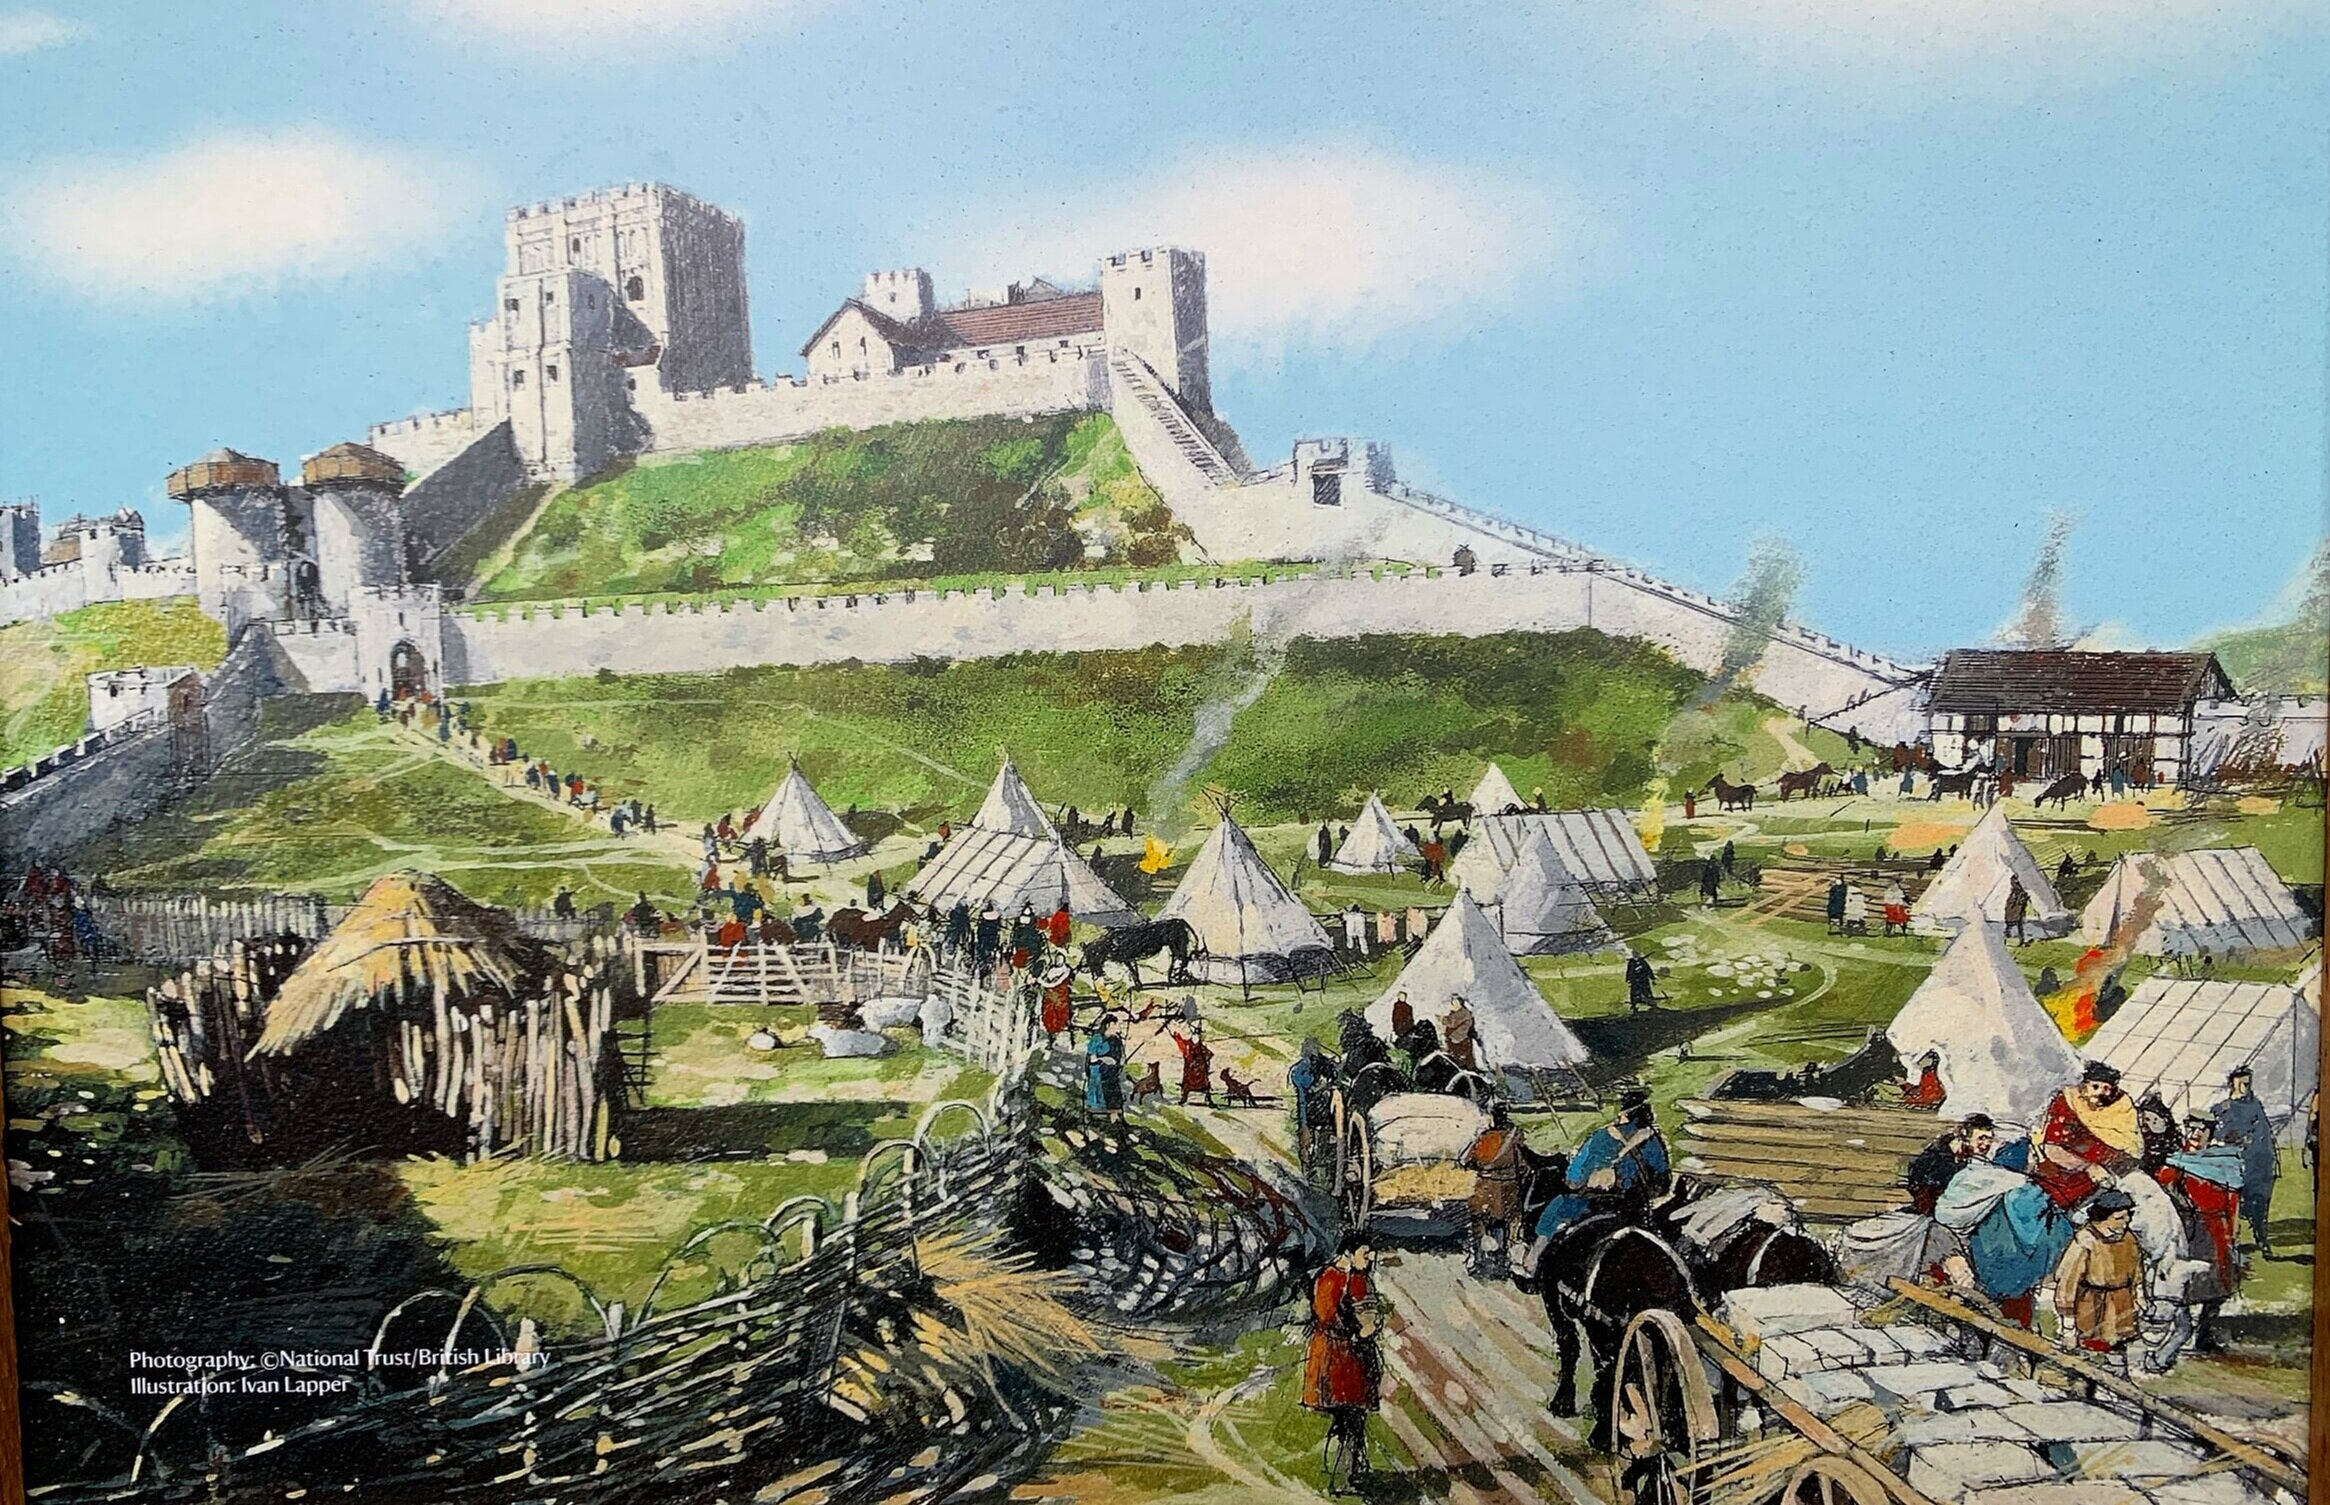 An artists impression of how the castle would have looked in its Medieval heyday